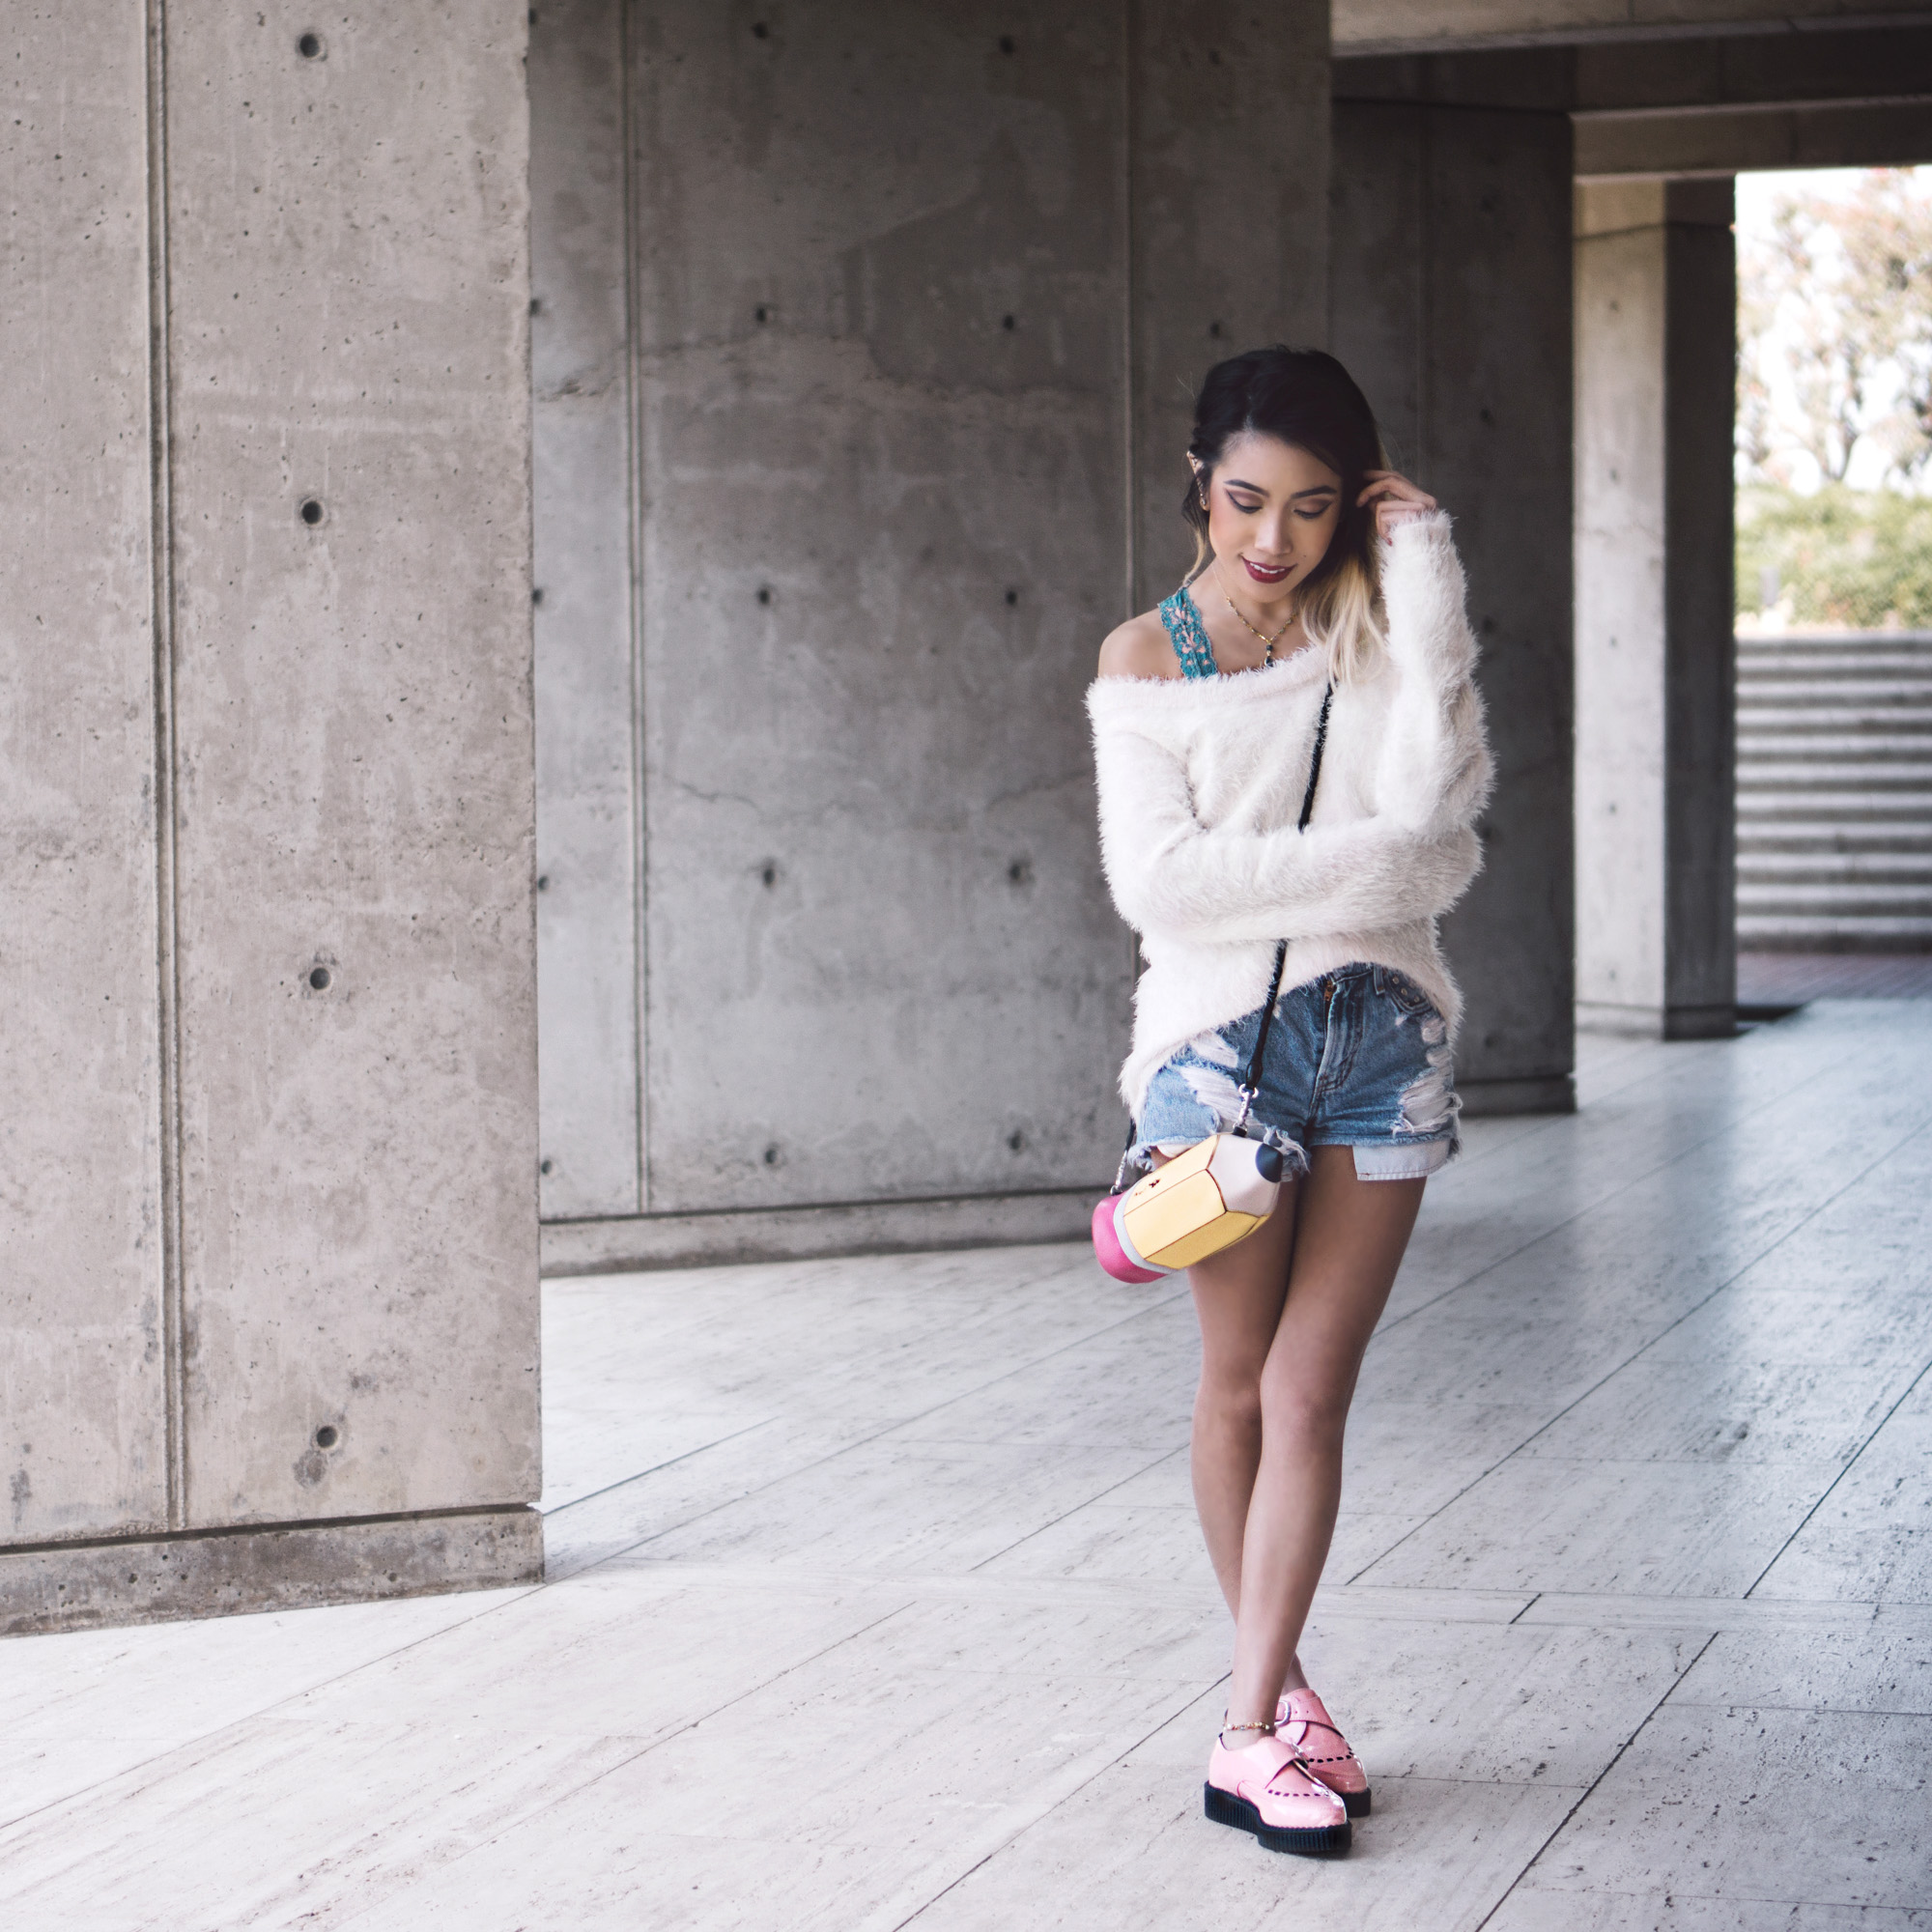 Top:  Out on the Town Sweater   Bag:  Valfre No. 2 Pencil Purse   Shoes: T.U.K. Footwear